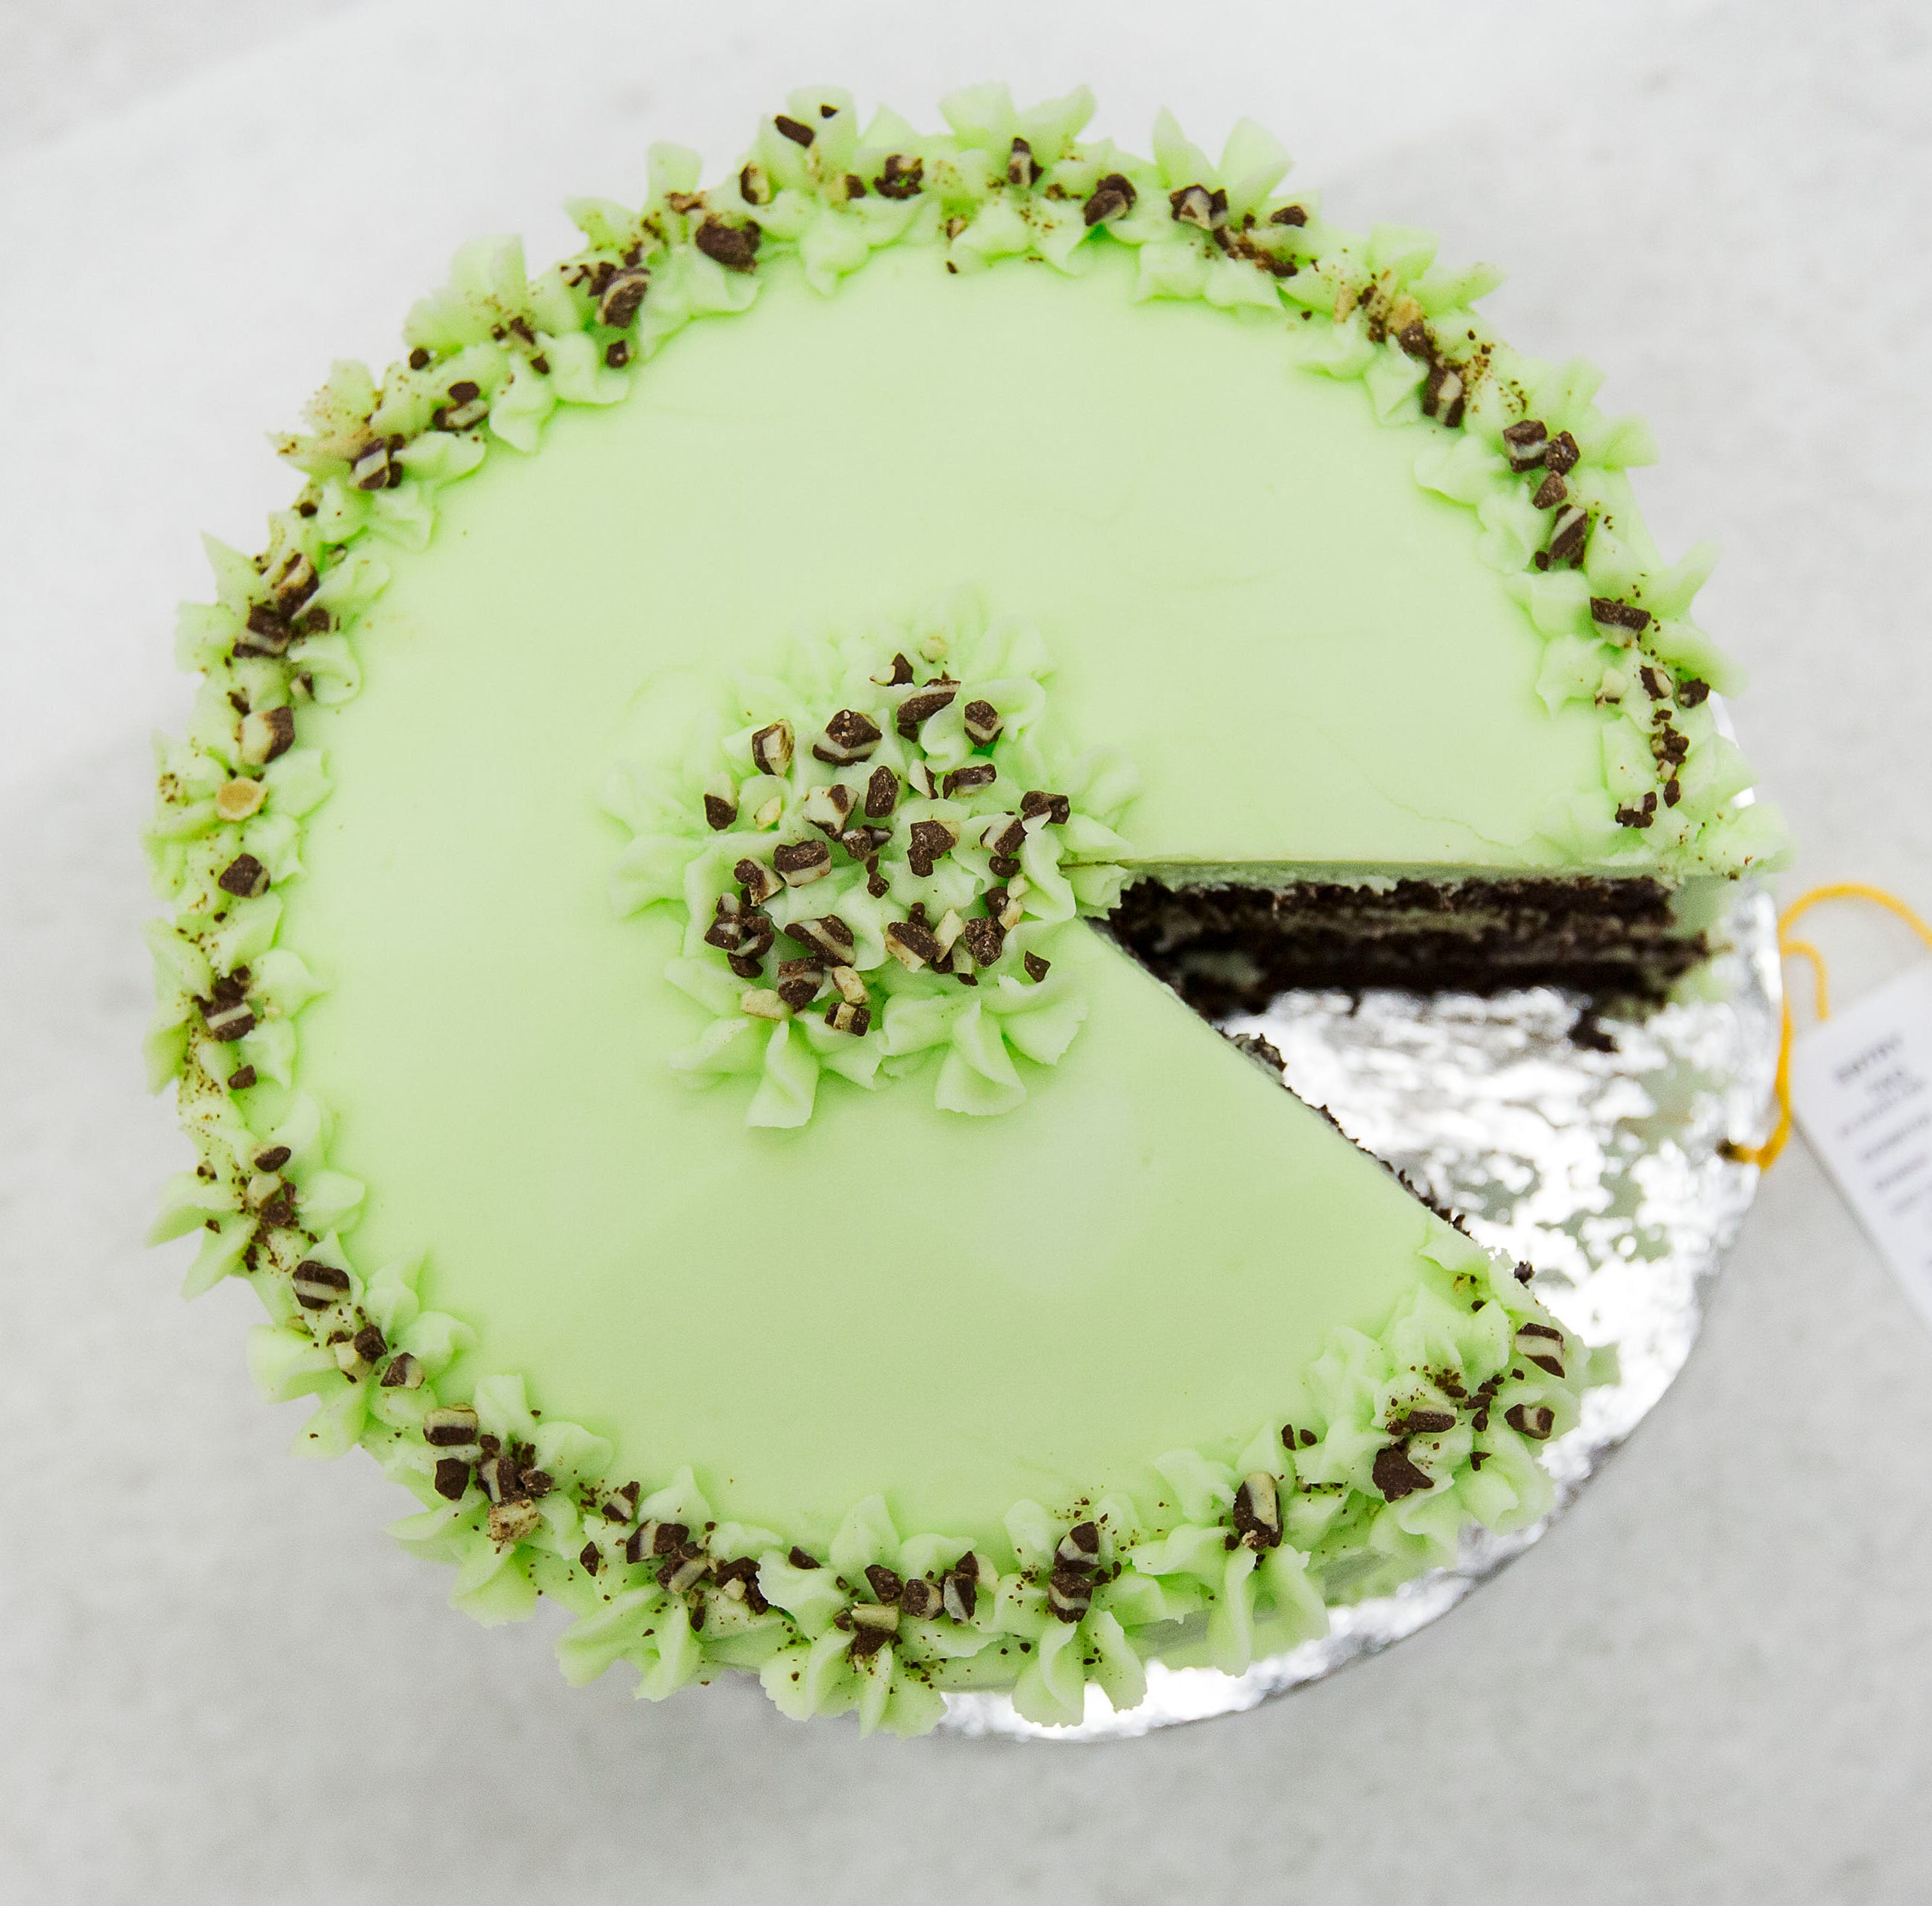 Choco Mint cake takes home coveted Kentucky State Fair blue ribbon